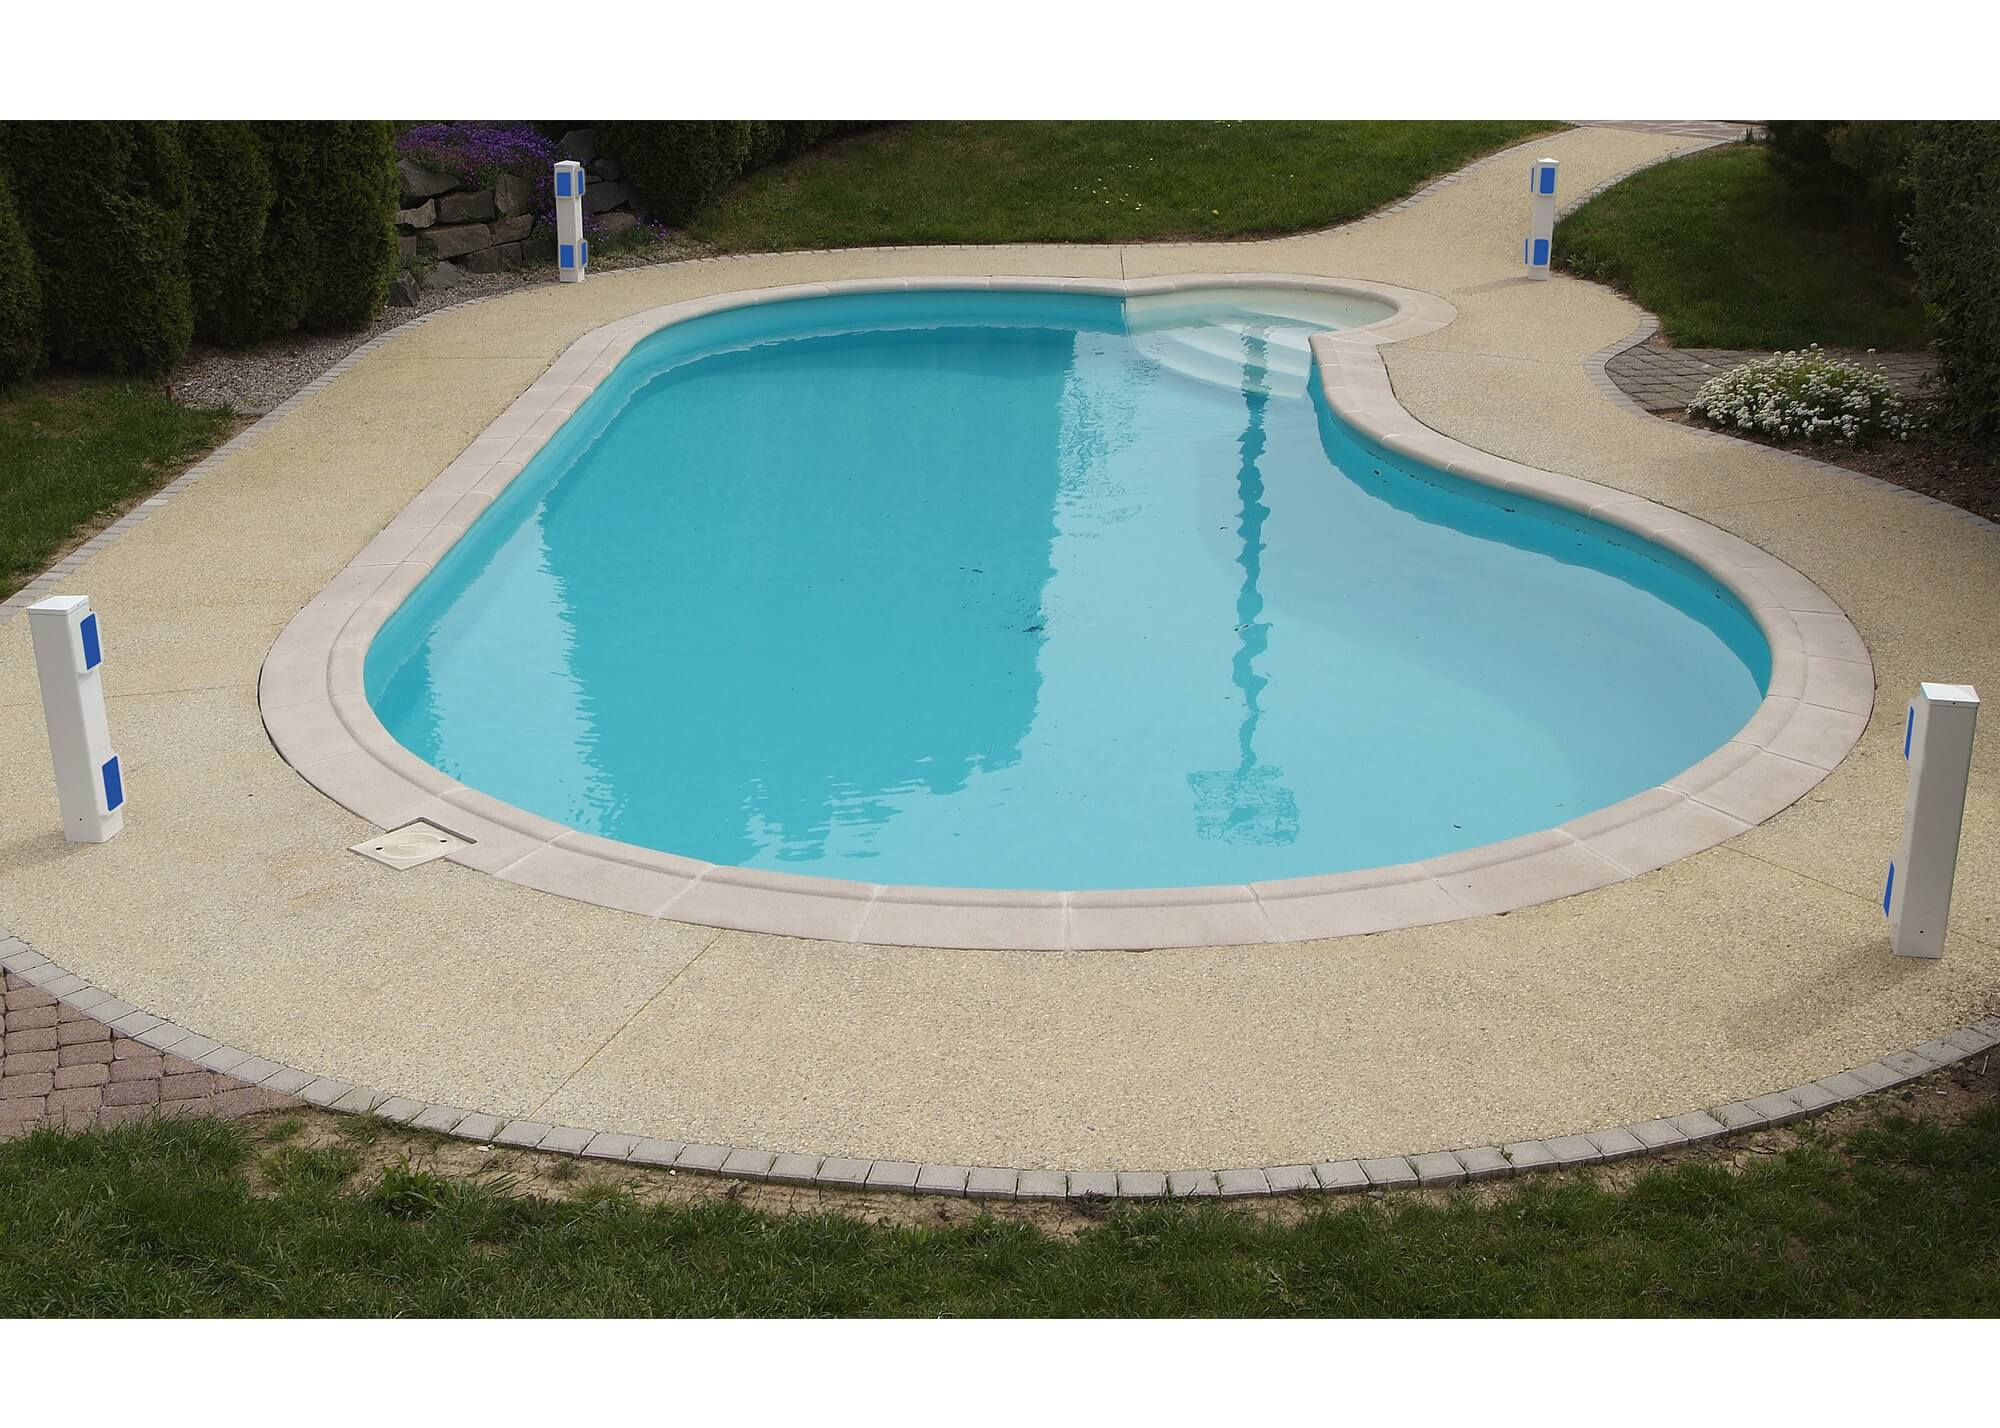 Alarme infrarouge primaprotect piscines waterair for Alarme piscine infrarouge